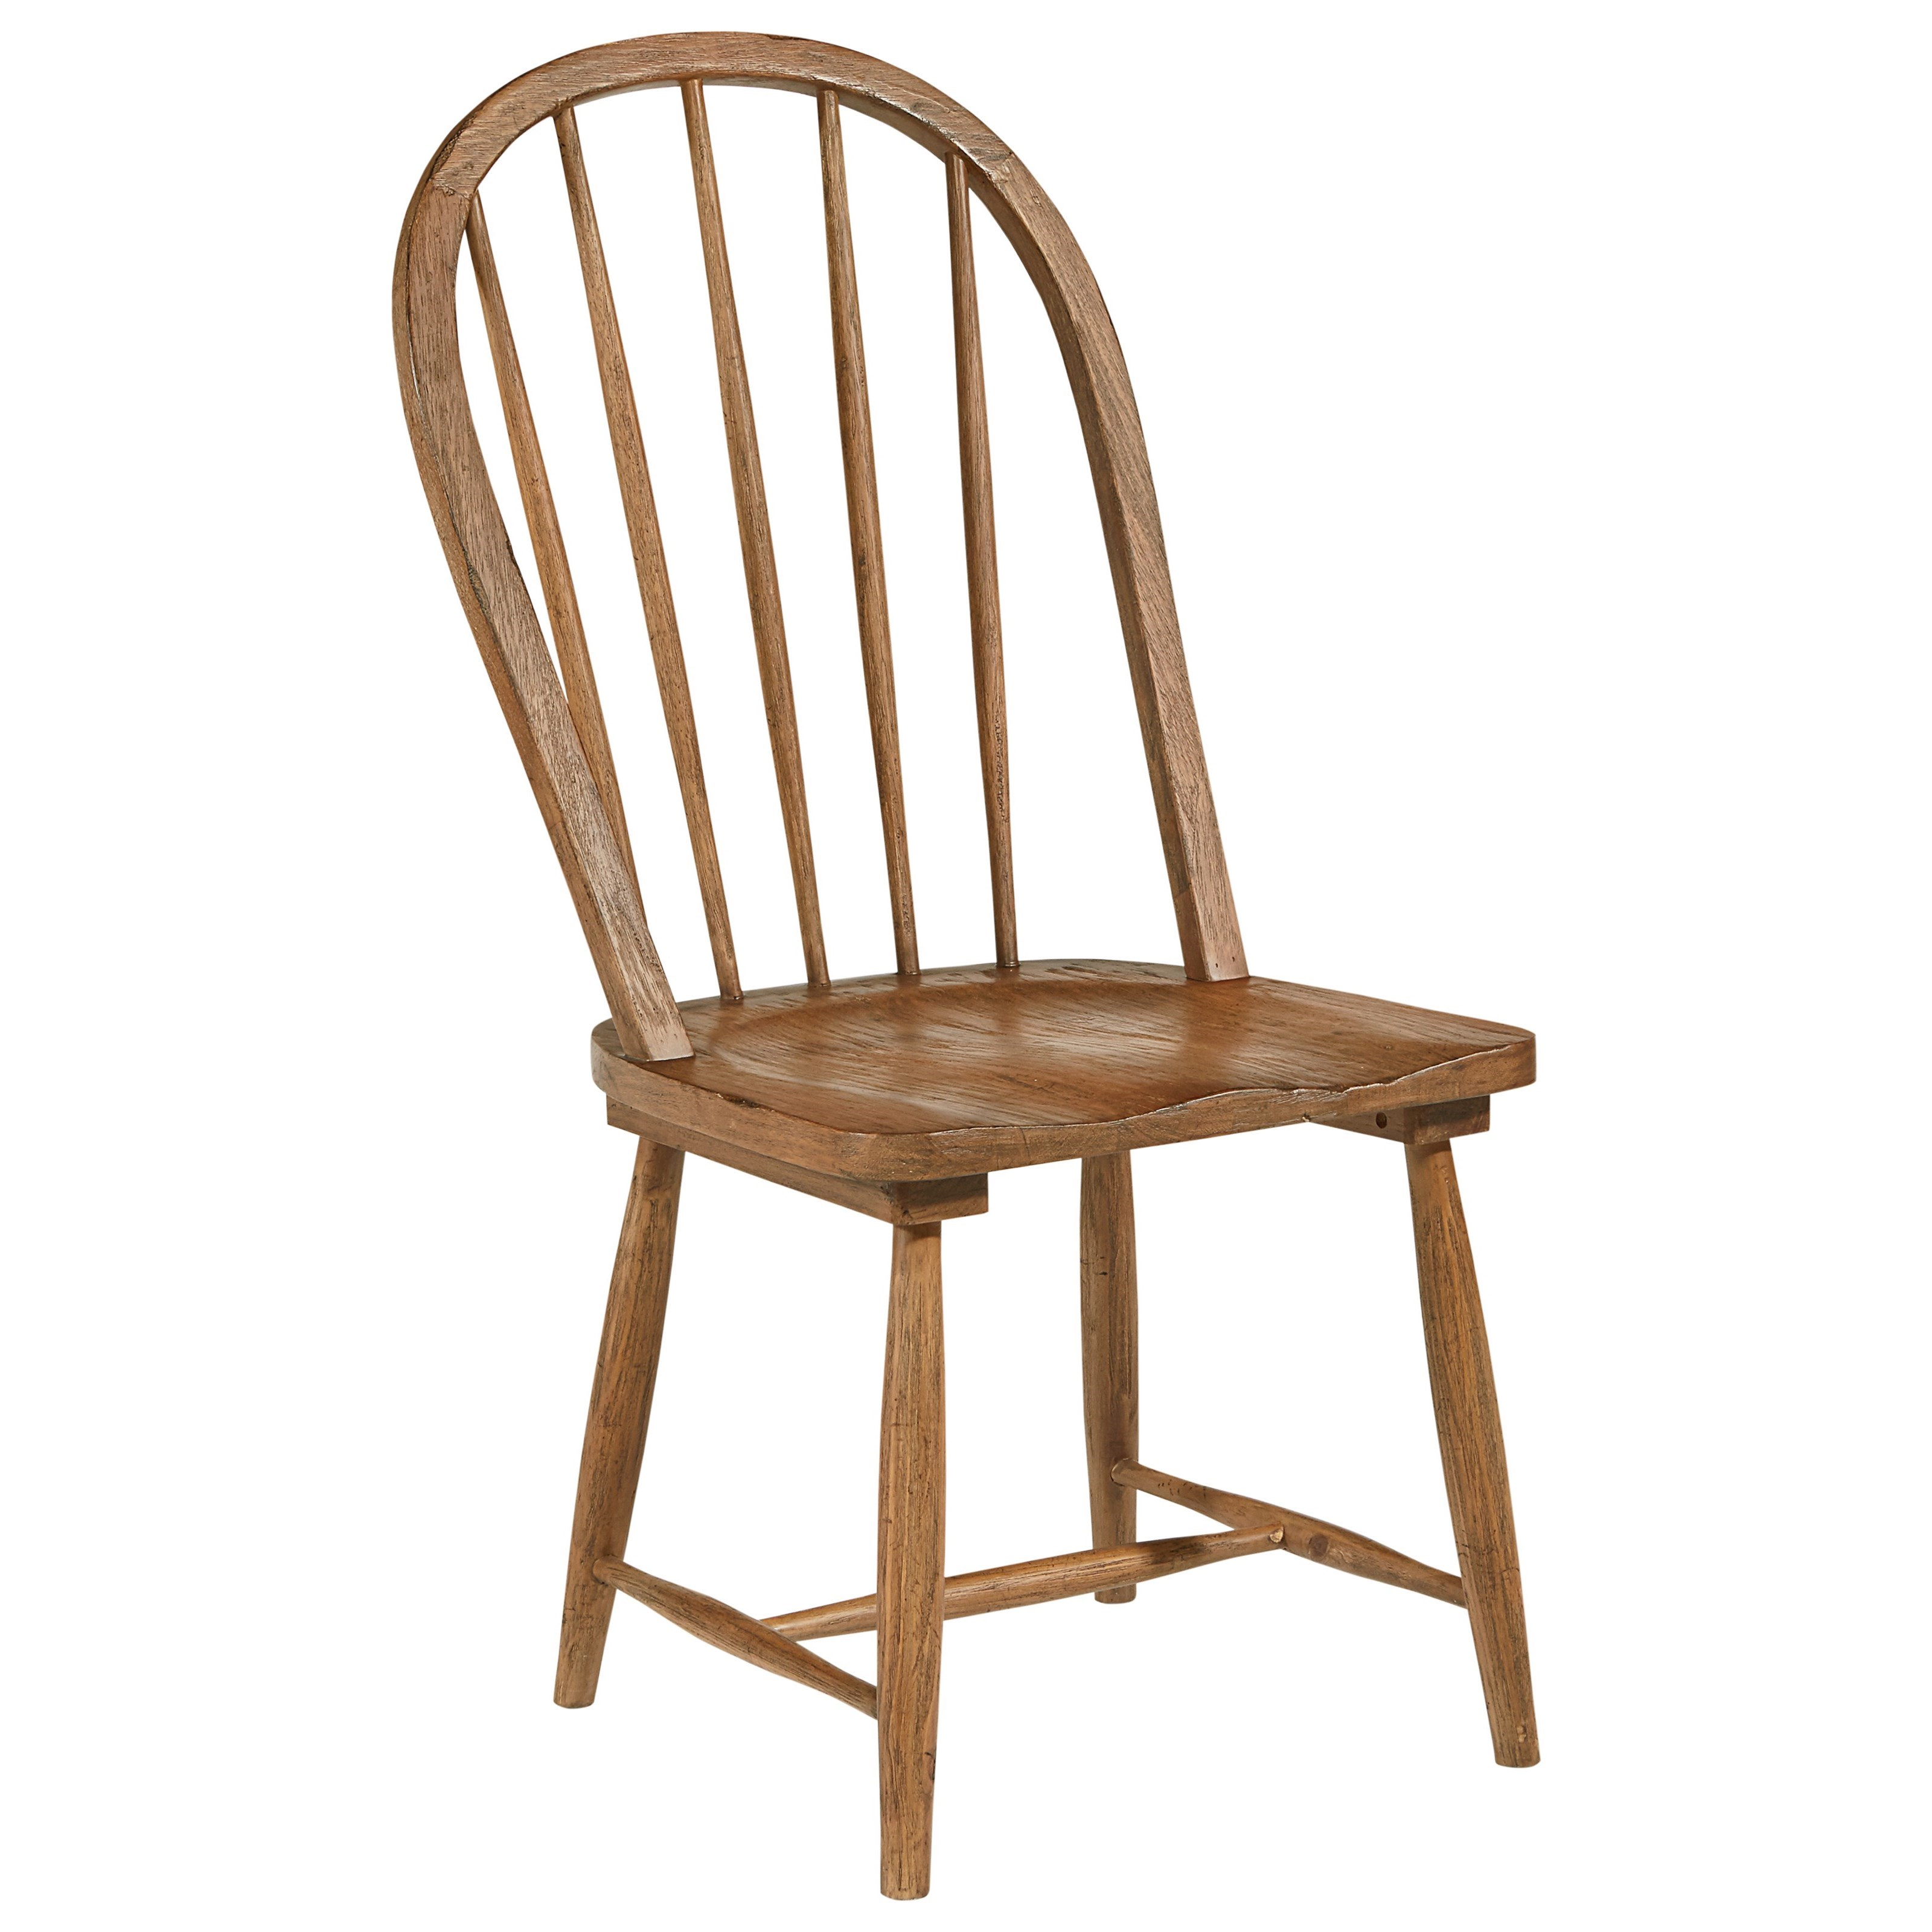 Magnolia Home by Joanna Gaines Primitive Windsor Hoop Chair - Item Number: 2010104I